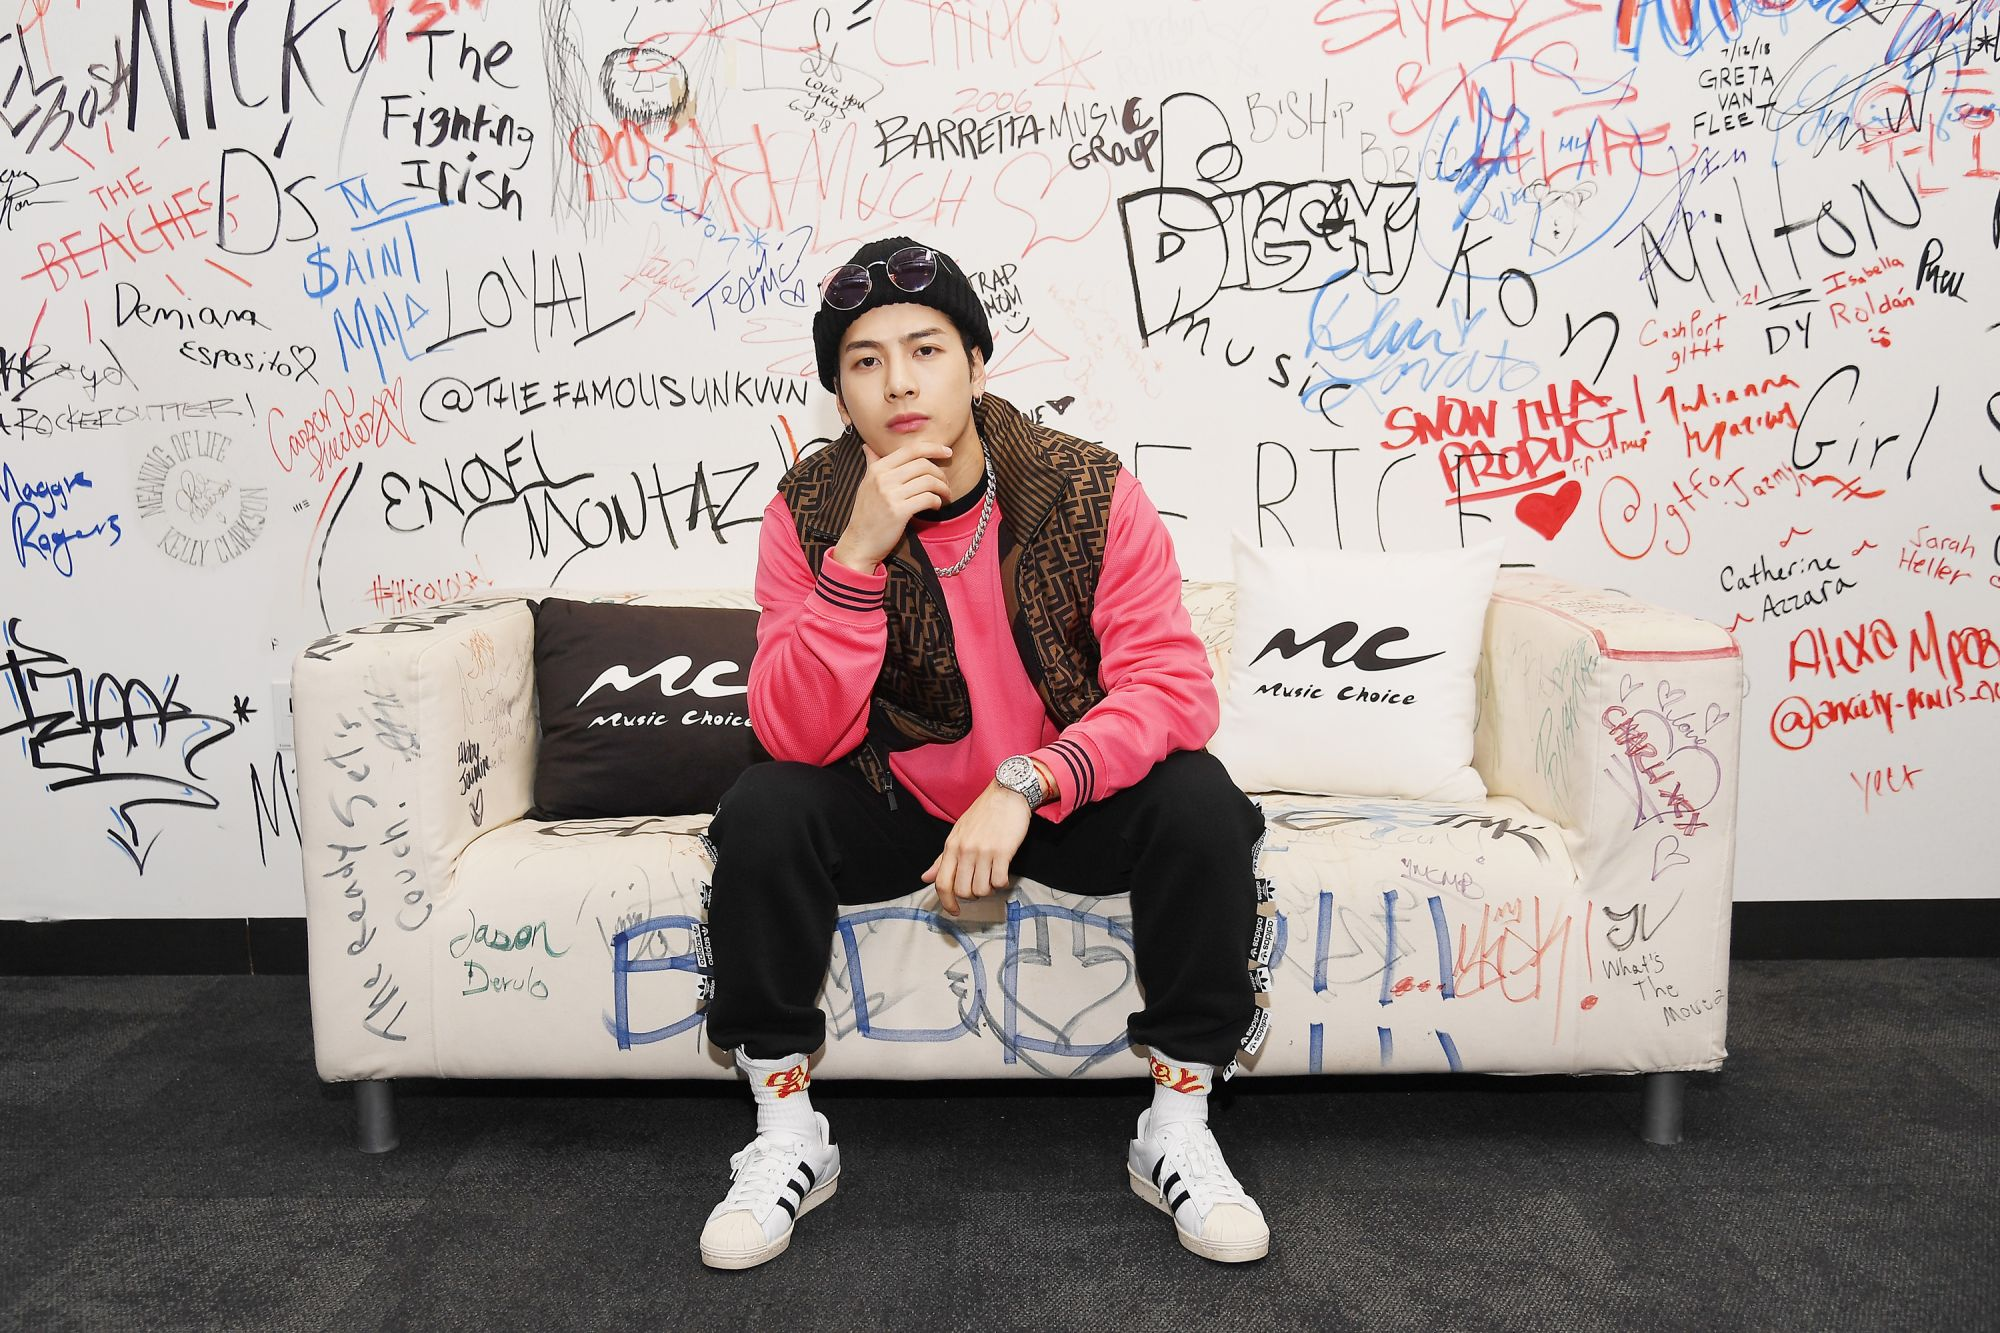 NEW YORK, NEW YORK - FEBRUARY 20: Rapper Jackson Wang Visits Music Choice on February 20, 2019 in New York City. (Photo by Nicholas Hunt/Getty Images)